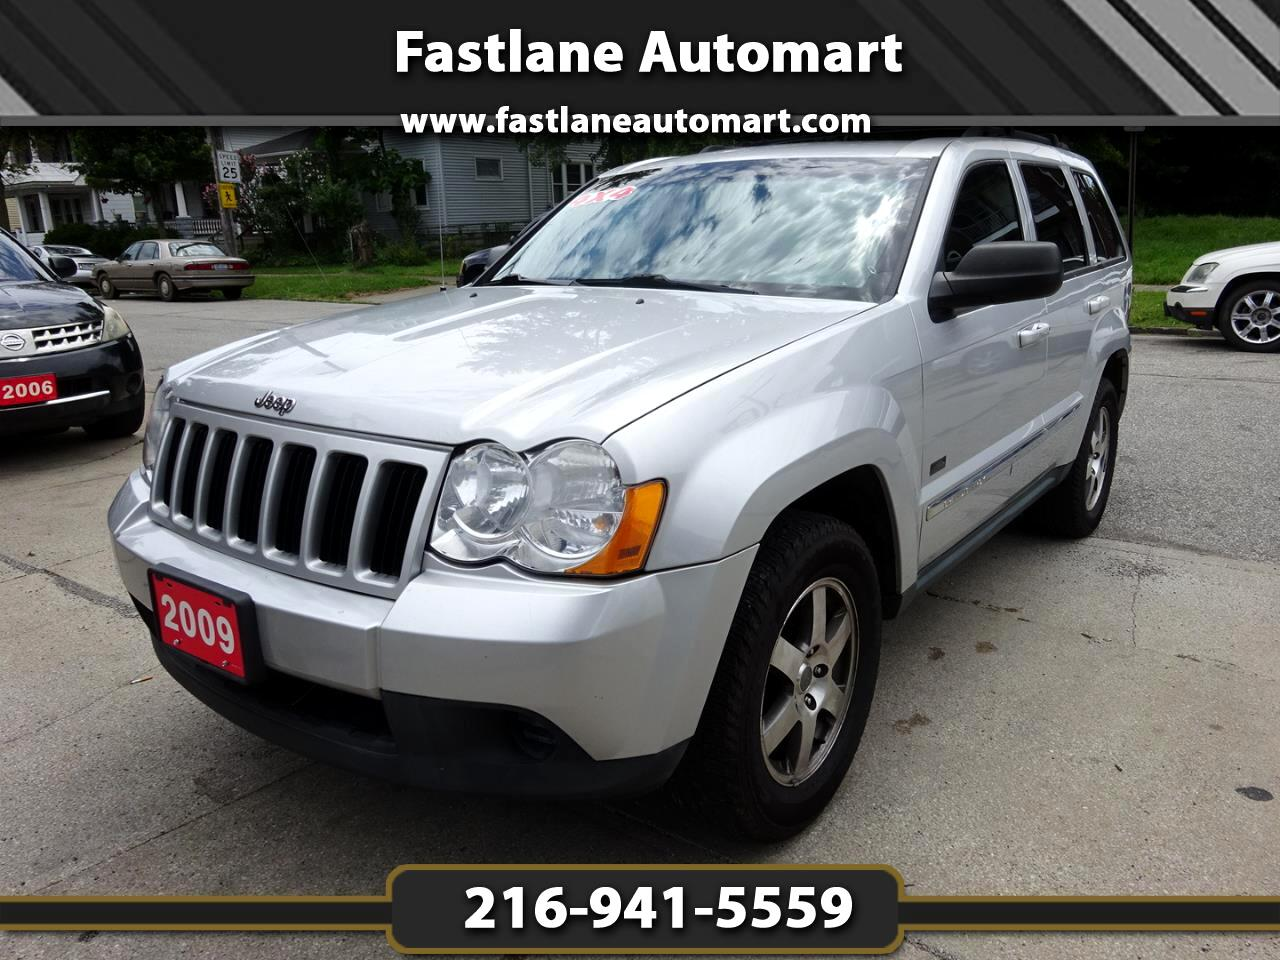 2009 Jeep Grand Cherokee 4WD 4dr Rocky Mountain